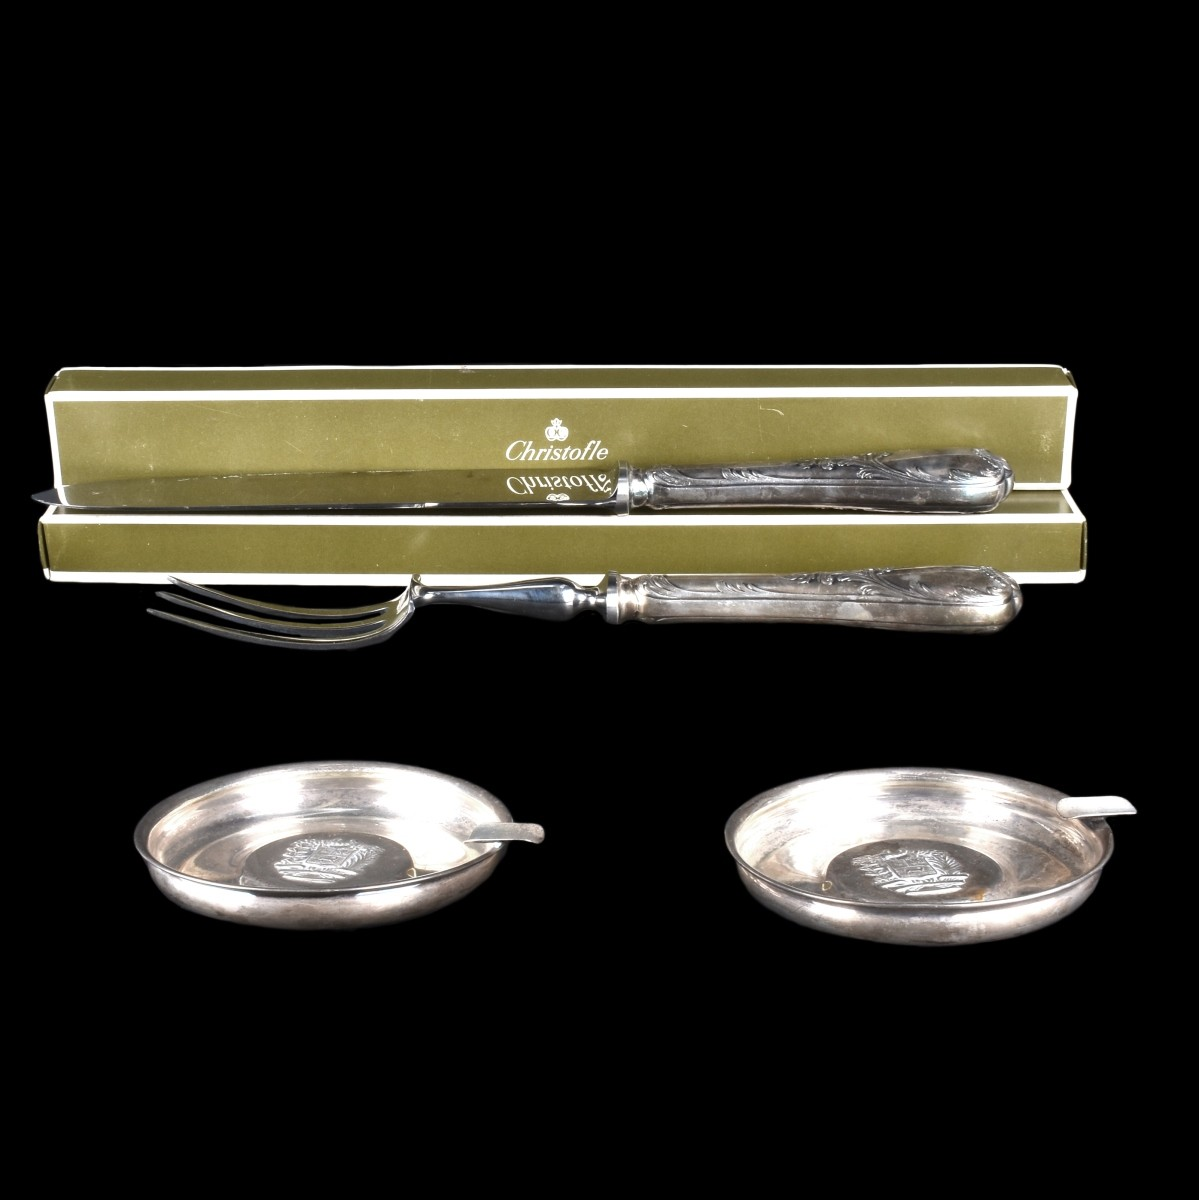 Christofle Marly Carving Set & Camuso Silver